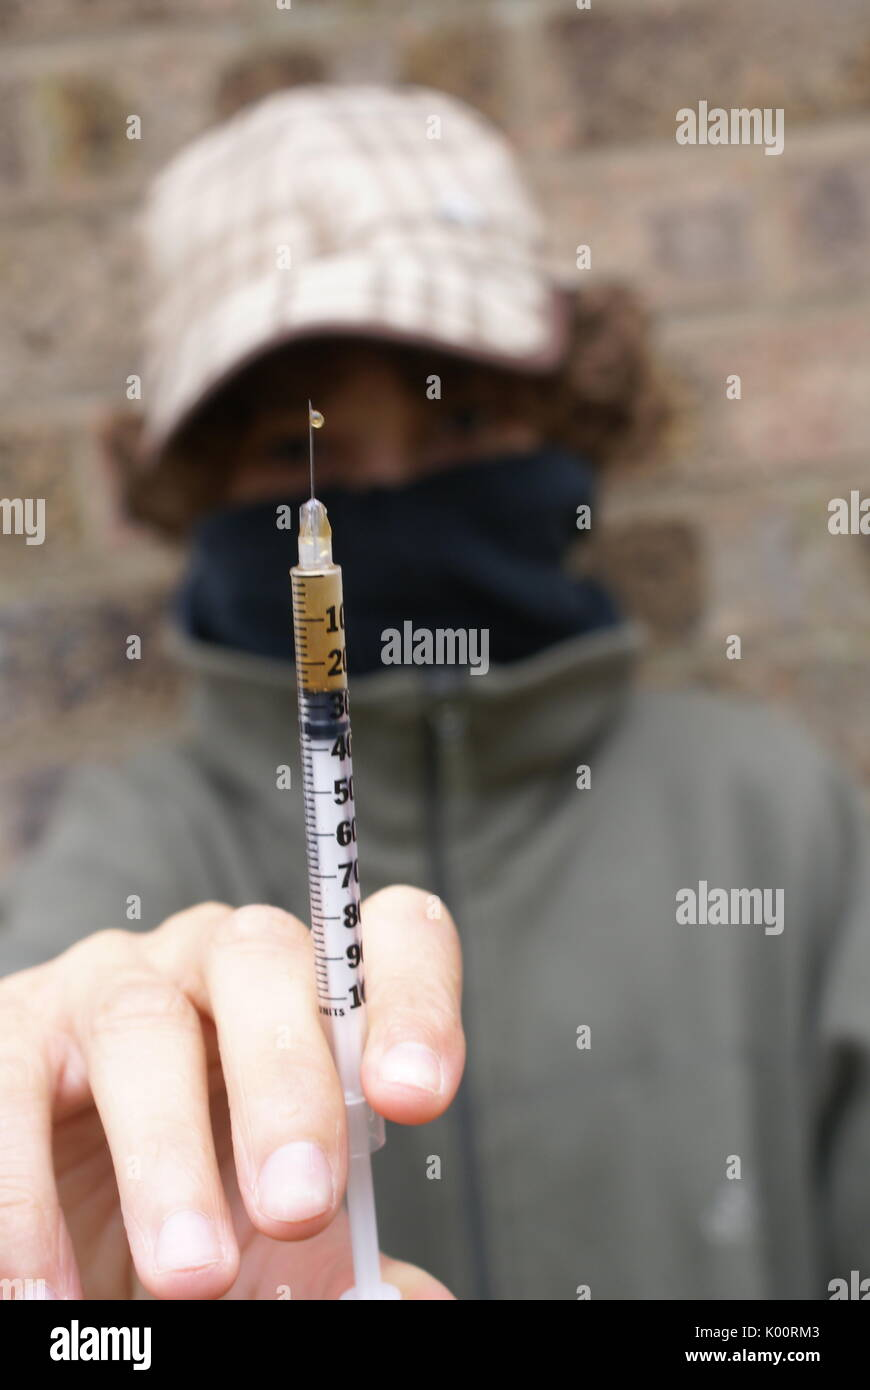 drug dependency, injecting heroin - Stock Image